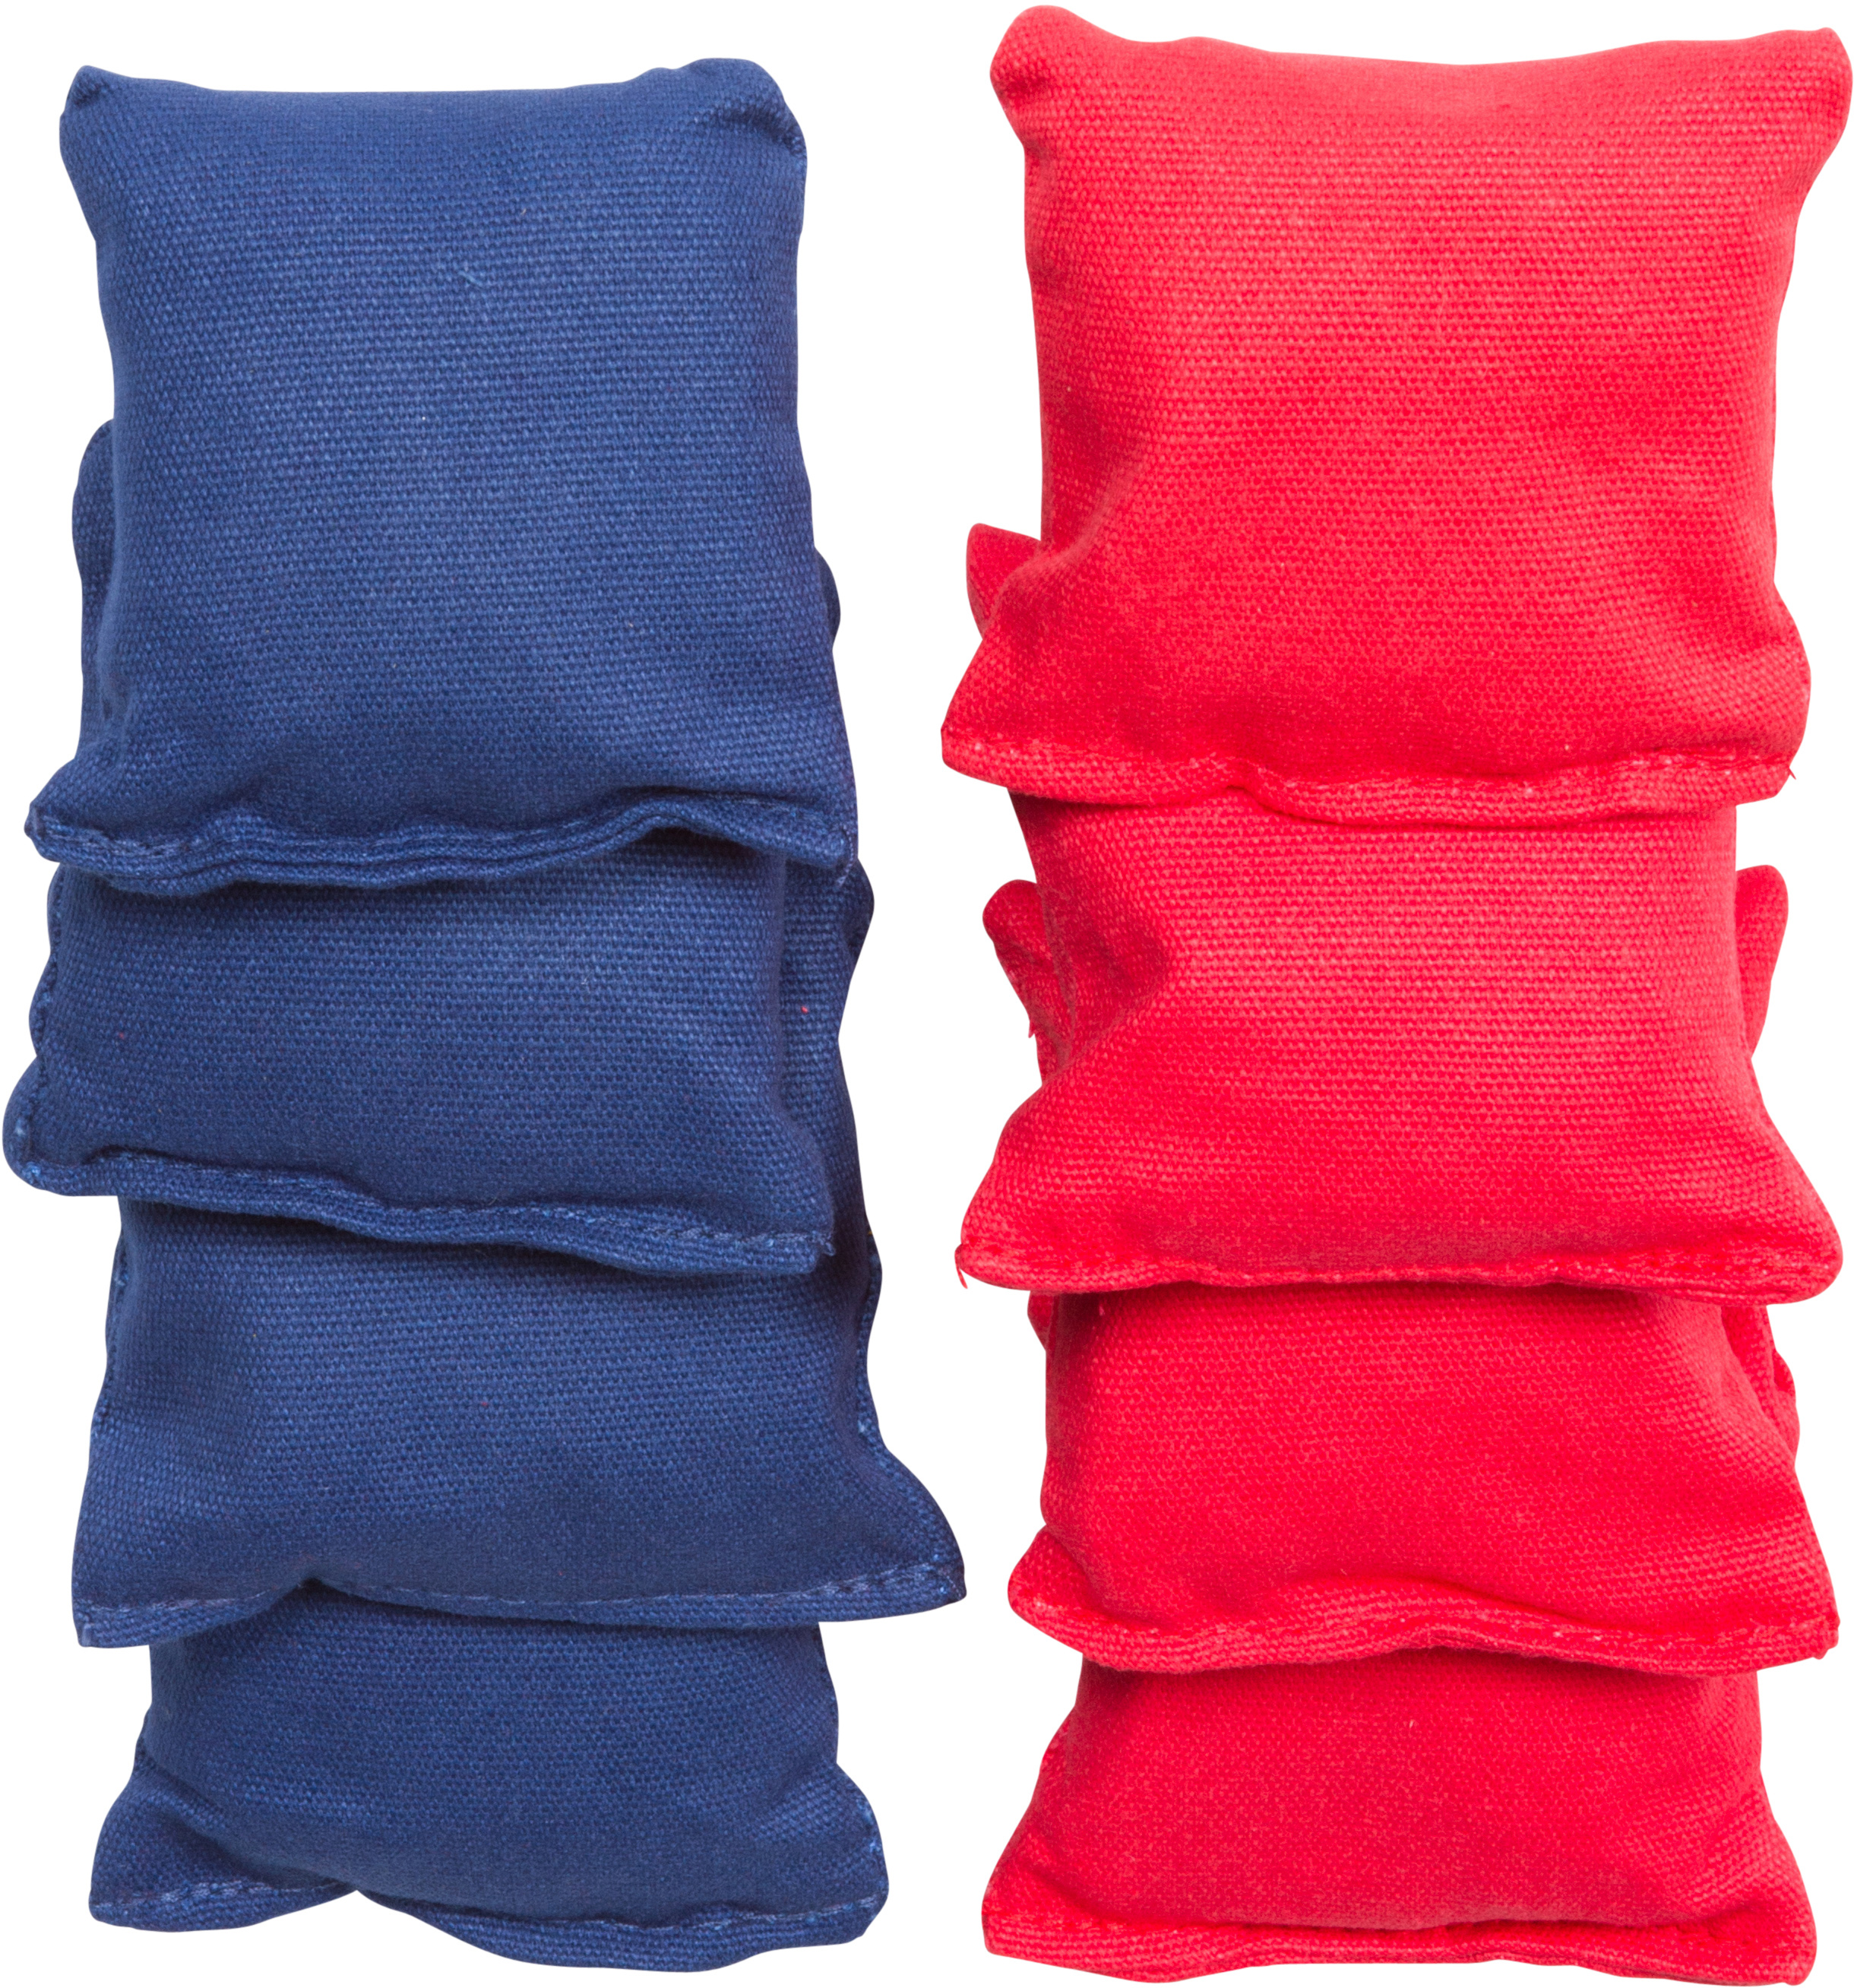 small sized bean bags 3 5 x 3 5 by tailgate360 red and blue